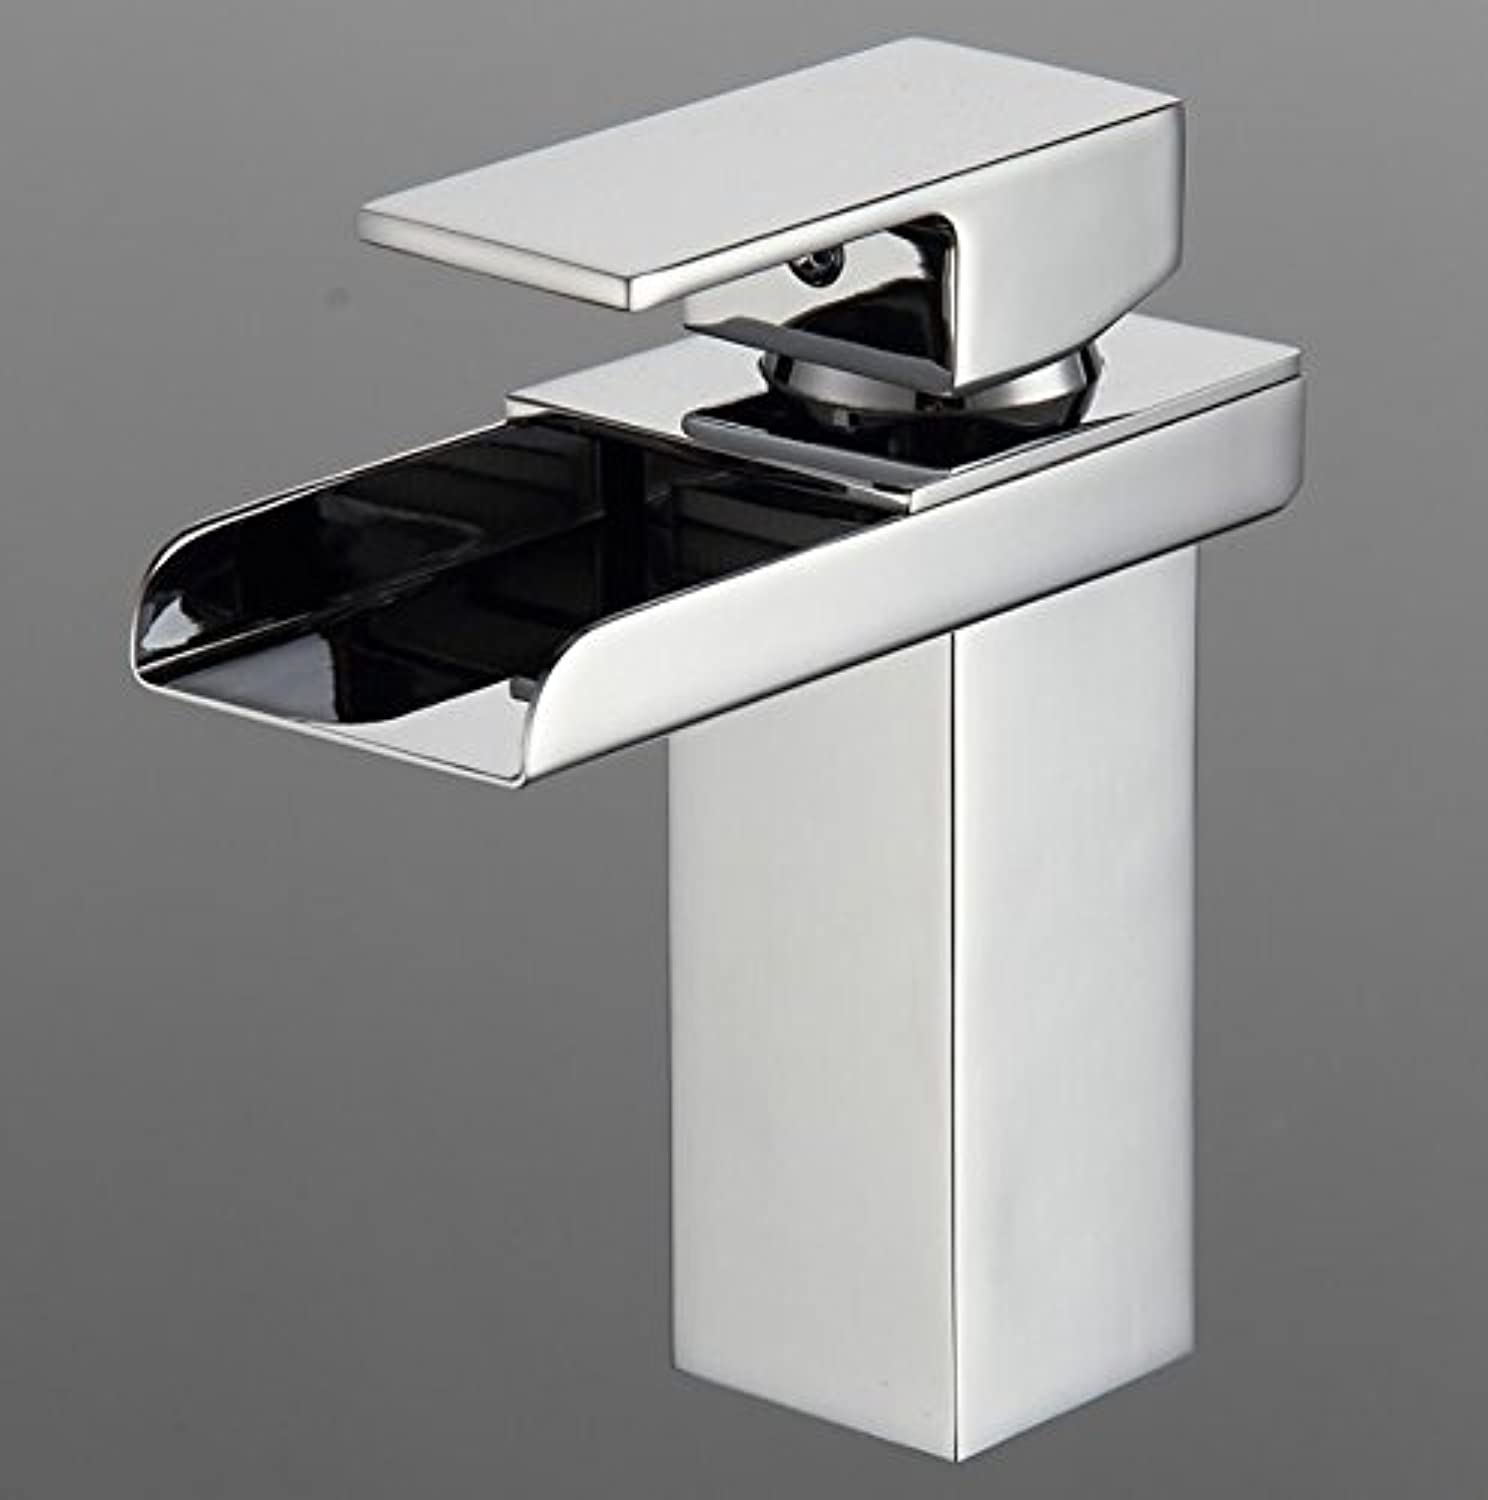 Aawang Sink Faucet Bathroom Waterfall Faucet. Brass Made Chrome Surface Mixer Taps One Handle Deck Mounted Waterfall Tap